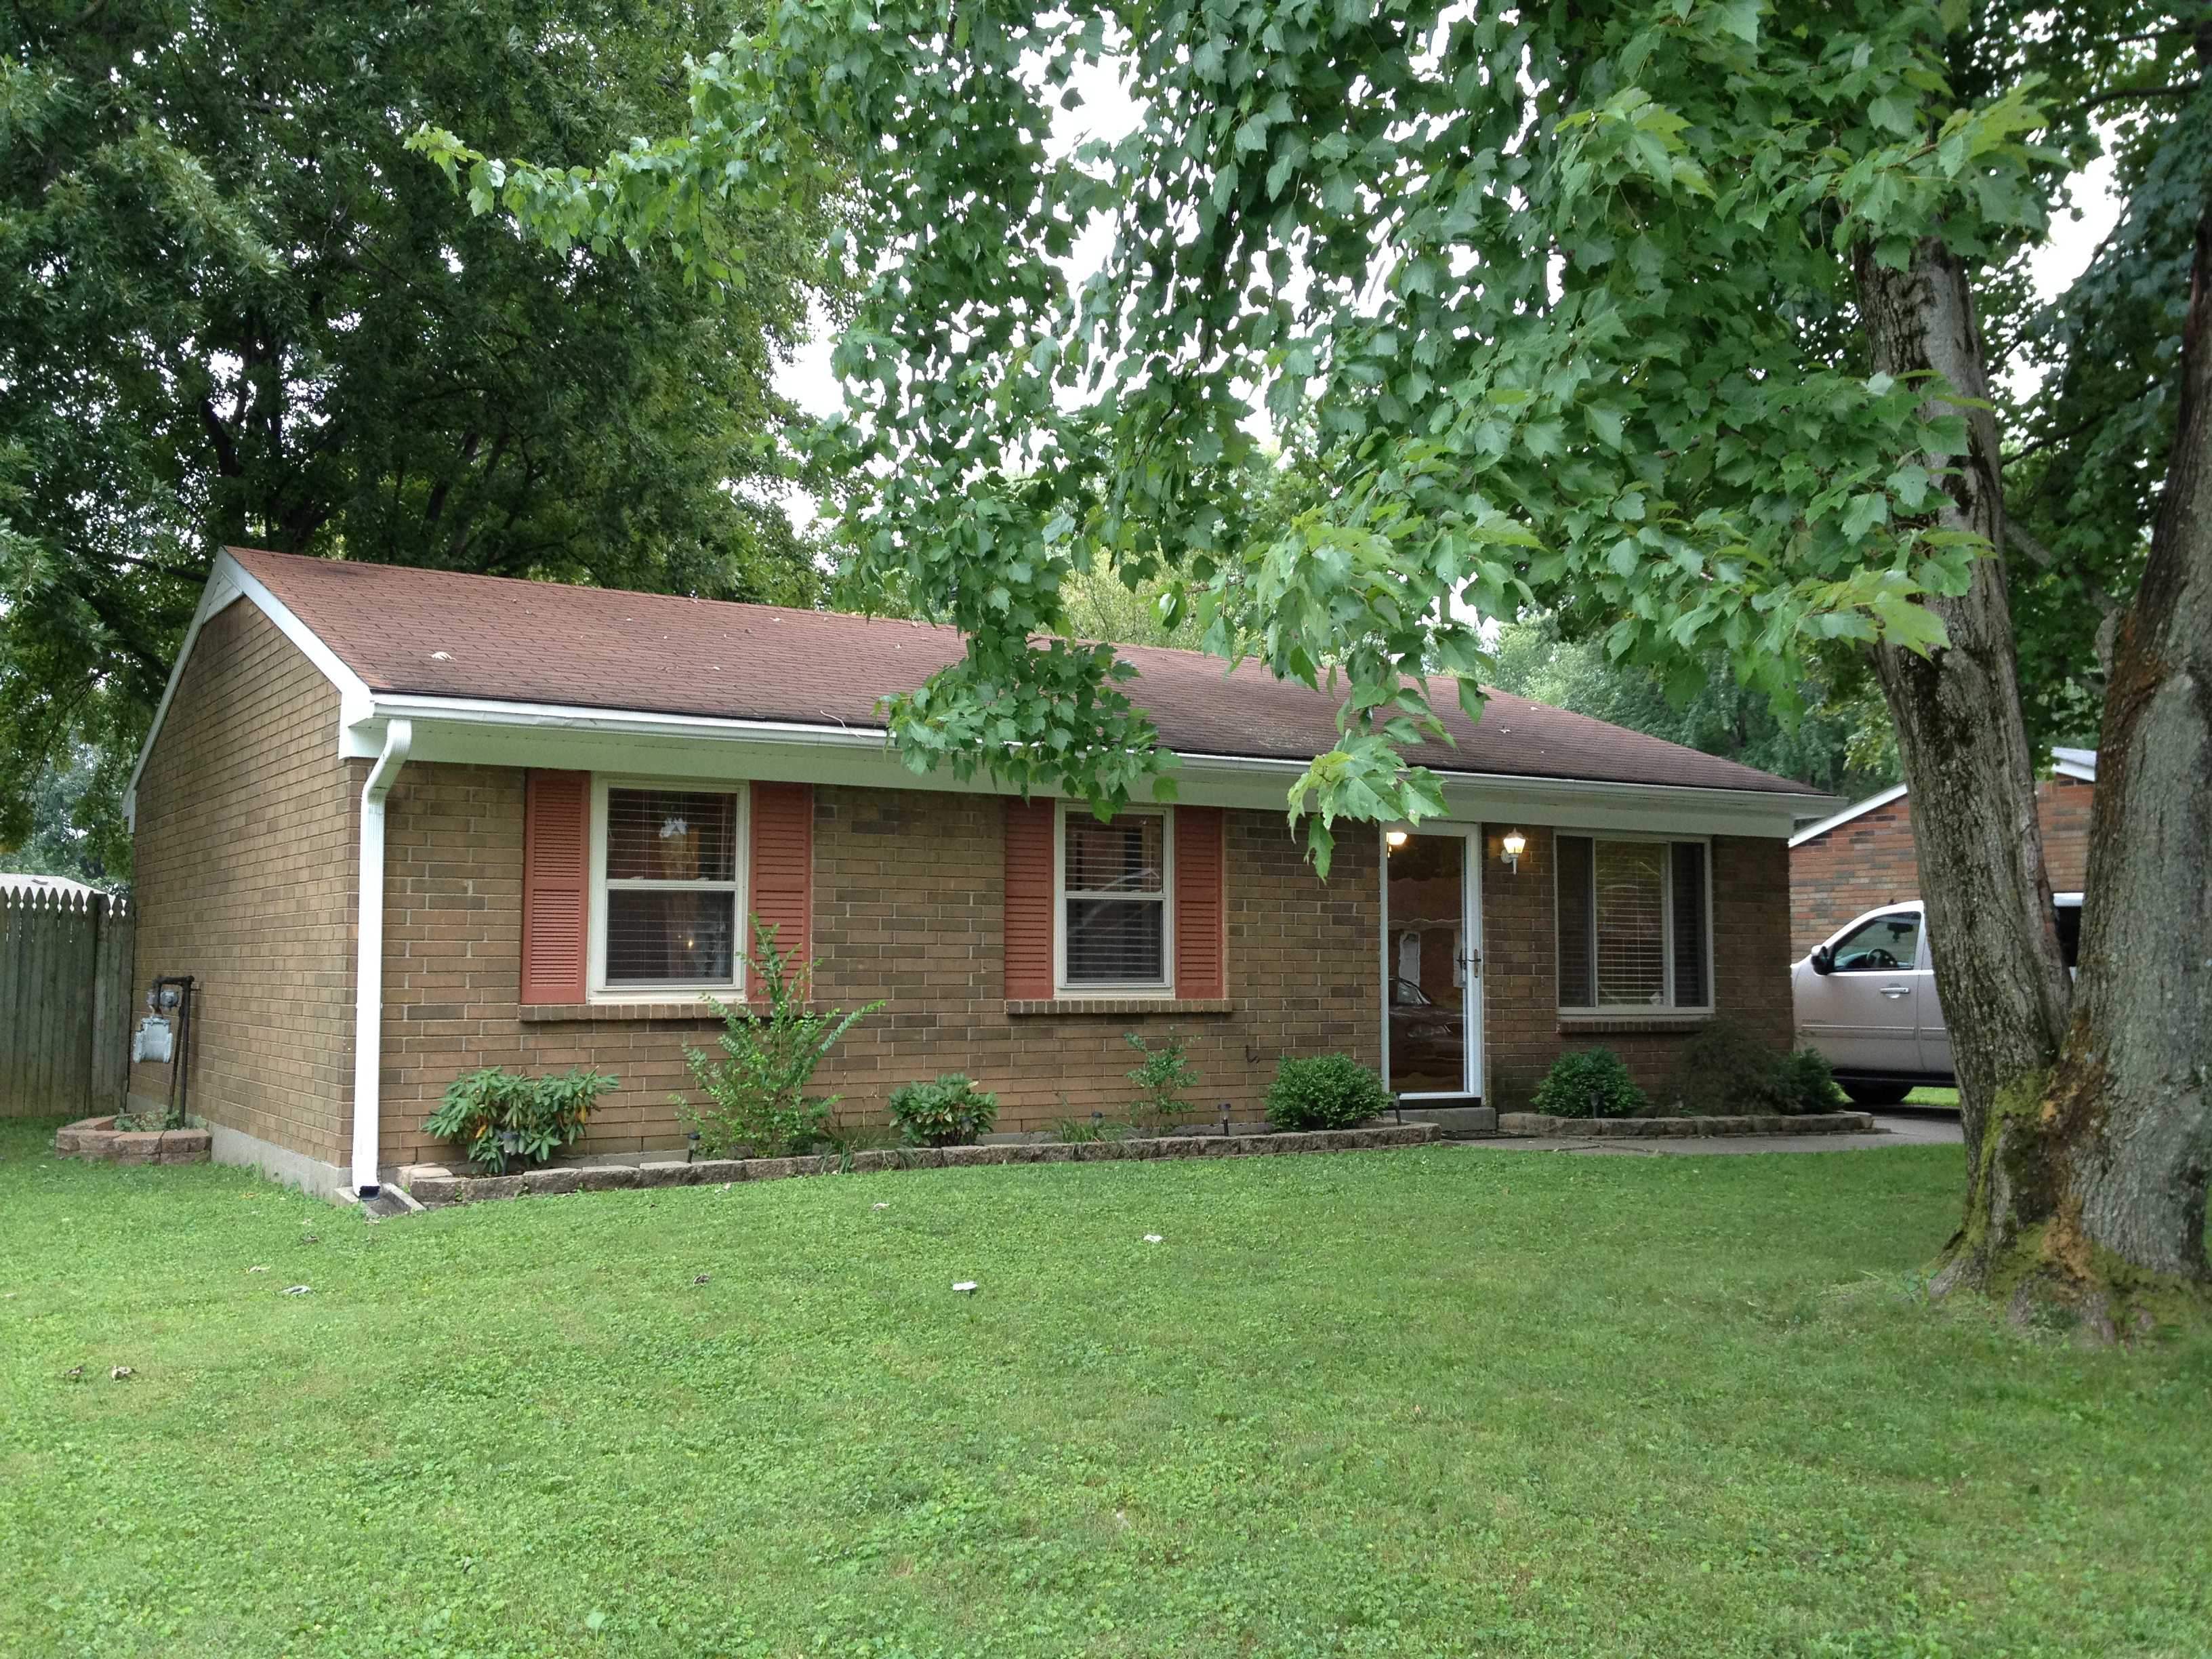 louisville ky 40216 on 3 bedroom 2 bath house for rent louisville ky